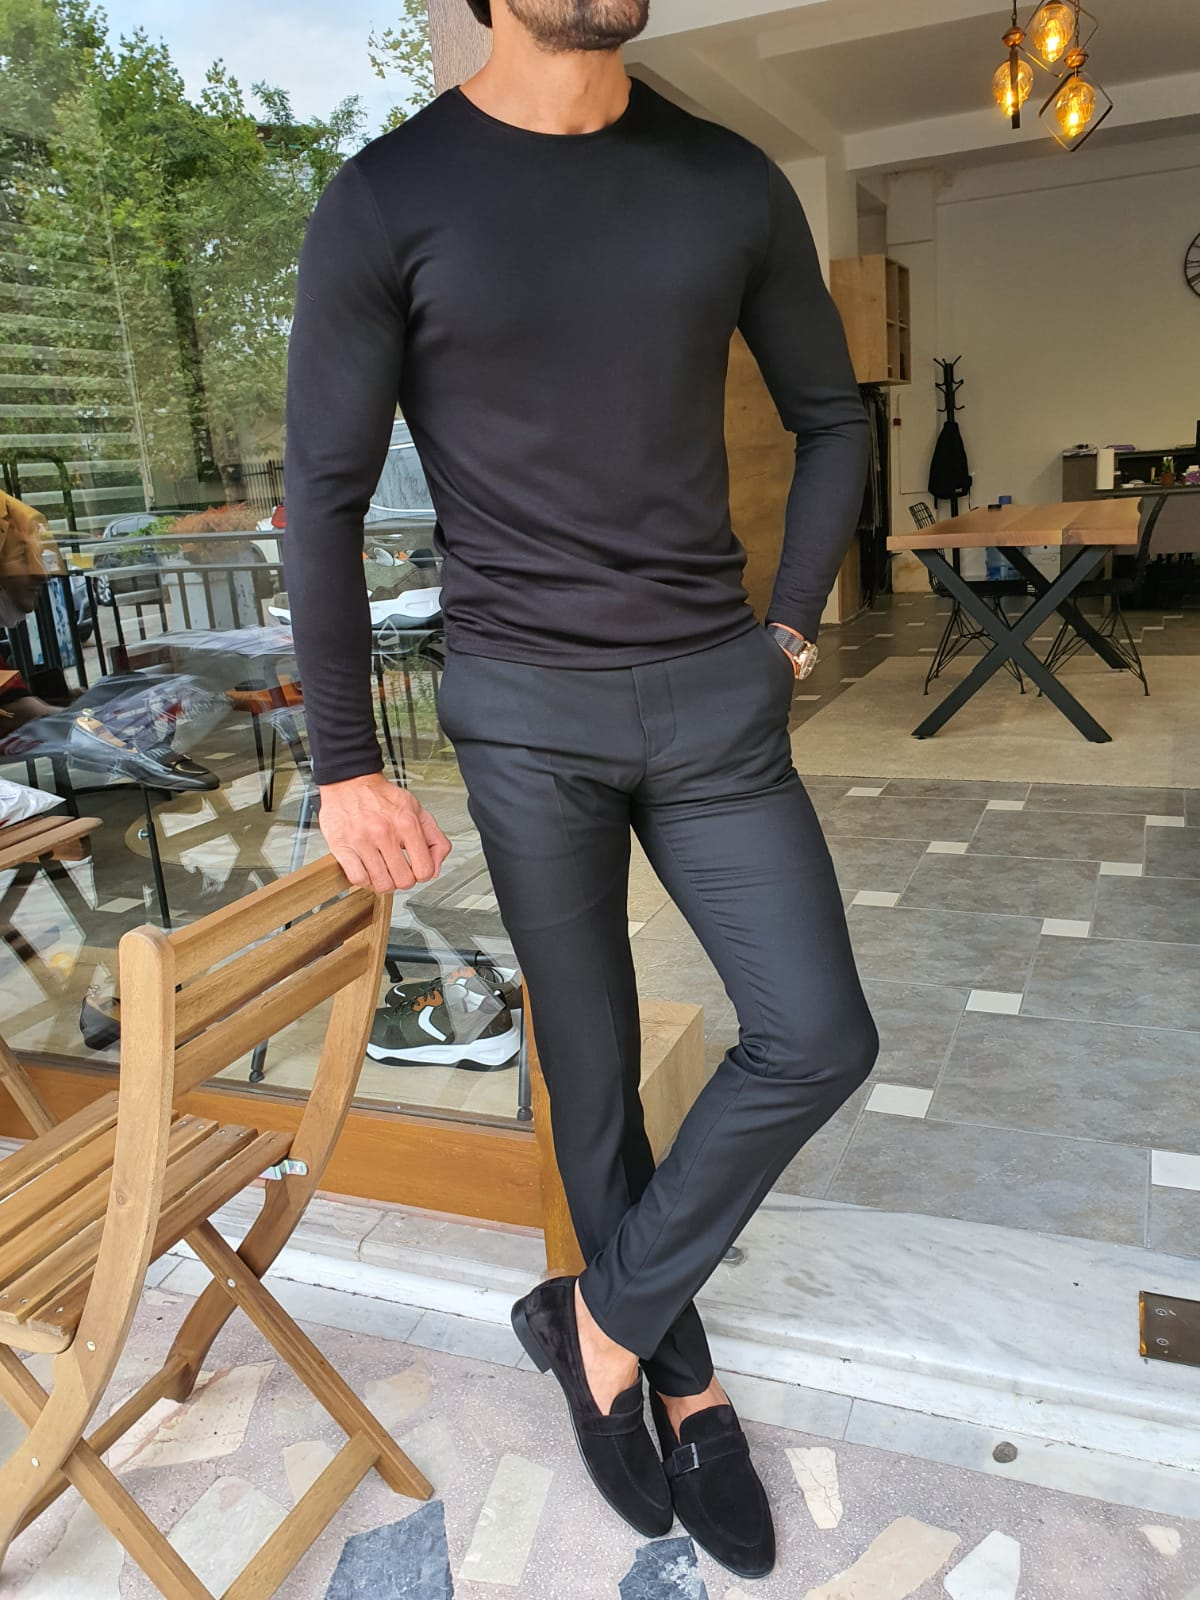 How To Look More Muscular - Tips and Ideas by GentWith Blog